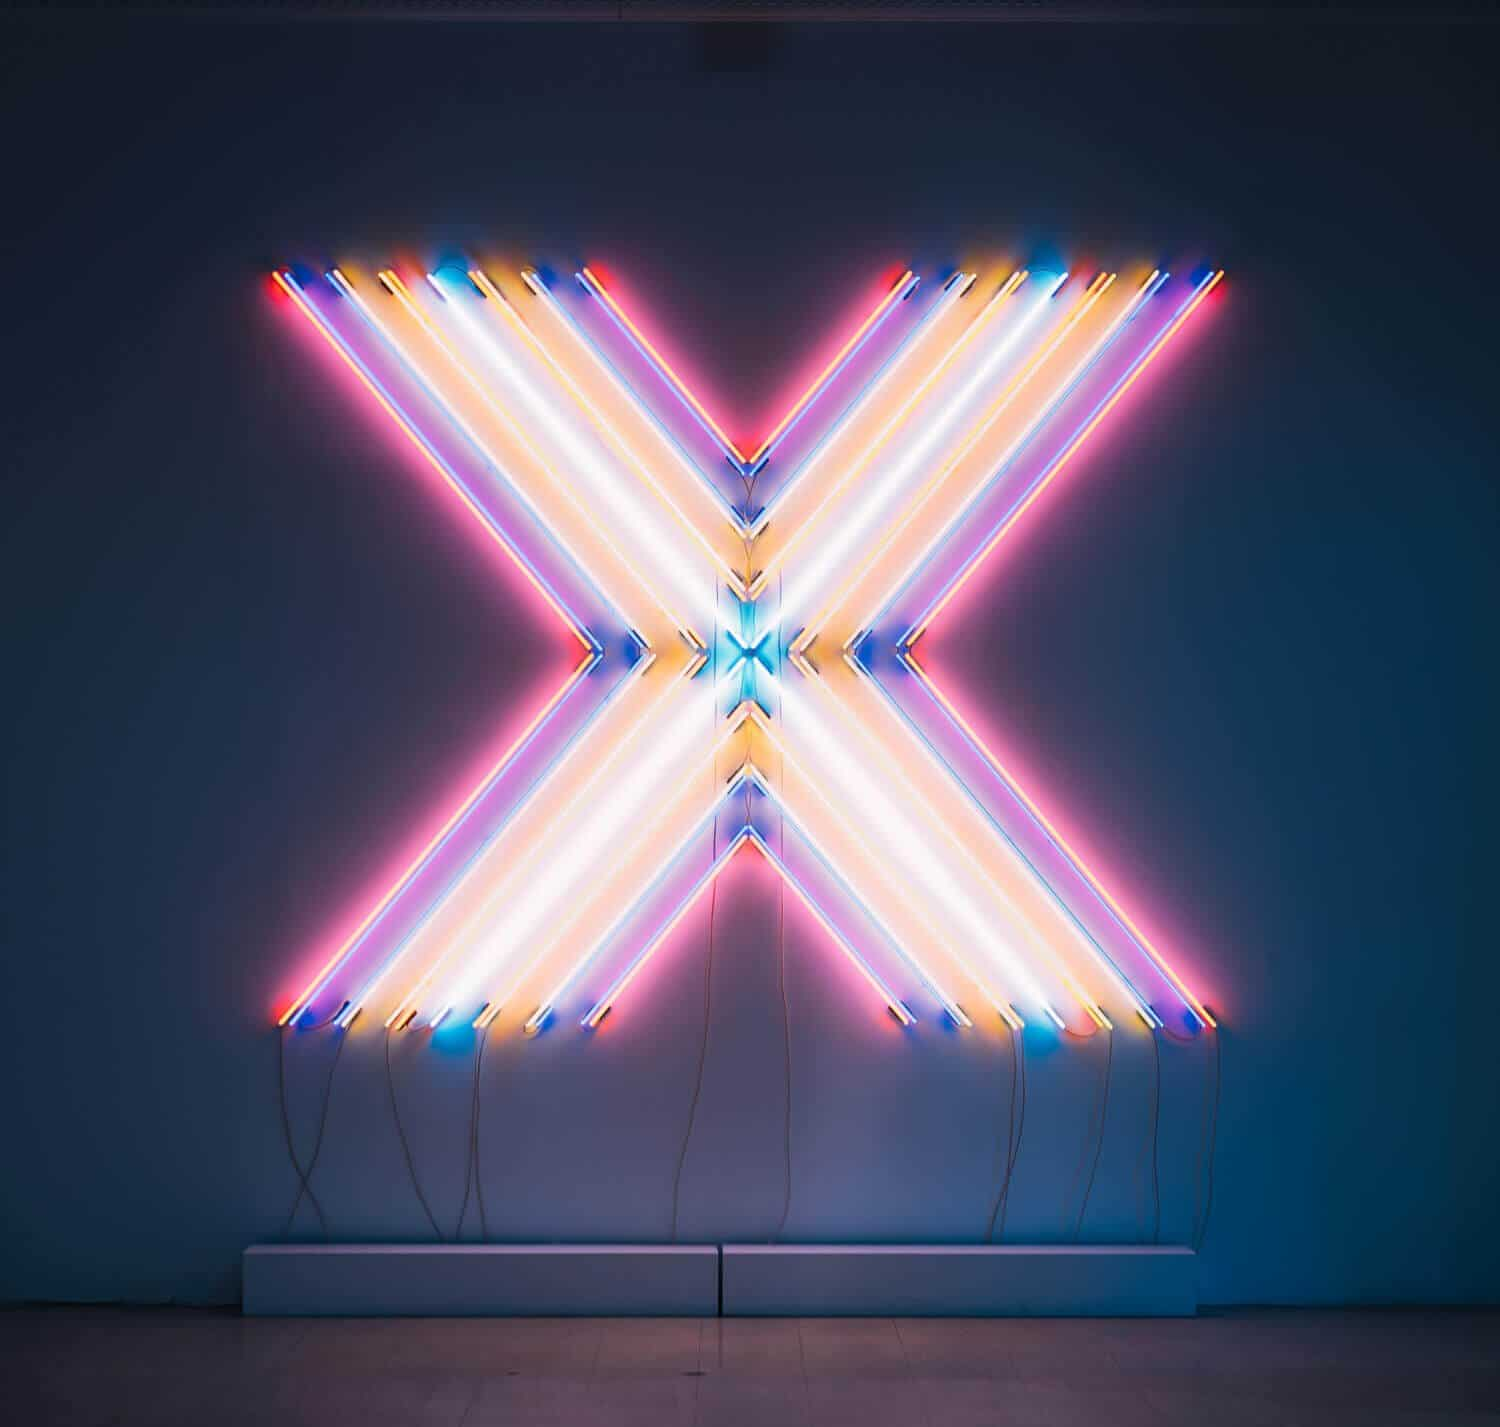 neon lights in the shape of an x